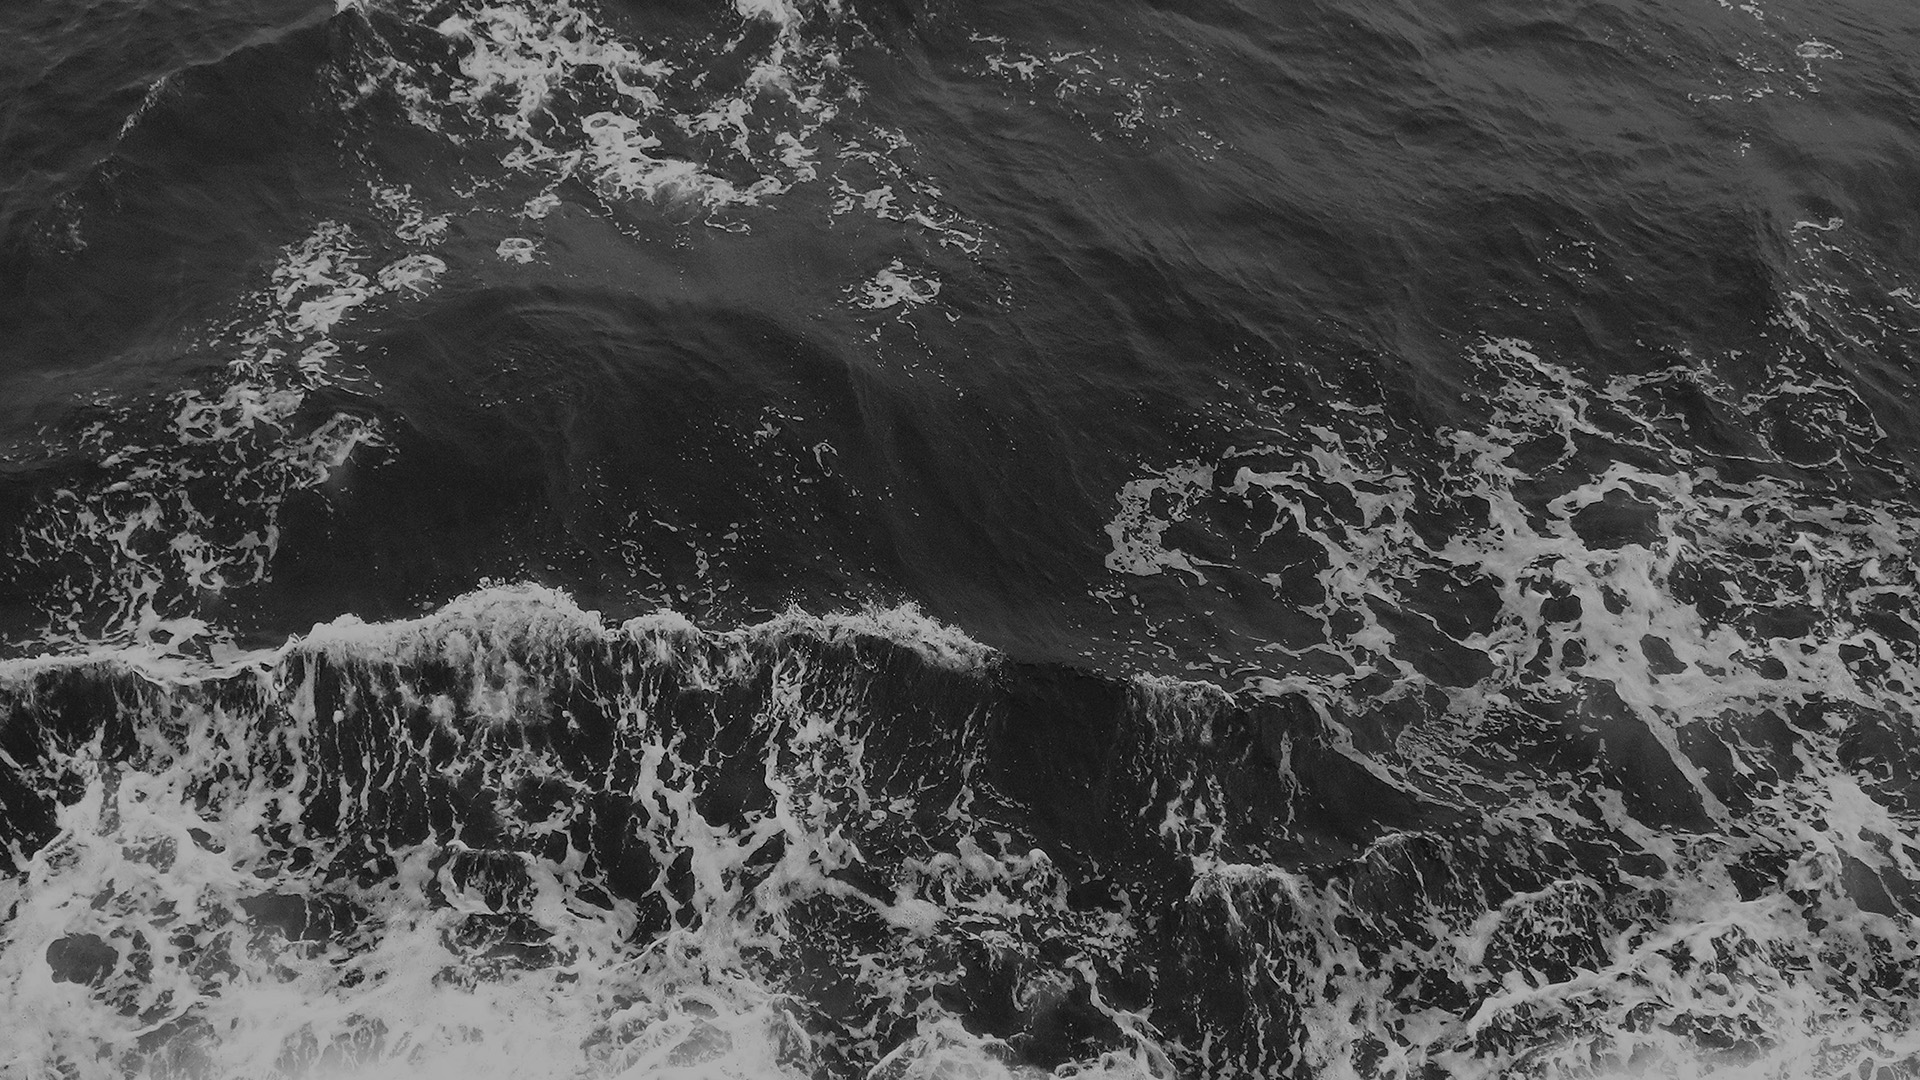 Fall Winter Iphone Wallpaper Mv50 Water Sea Vacation Texture Ocean Beach Dark Bw Wallpaper